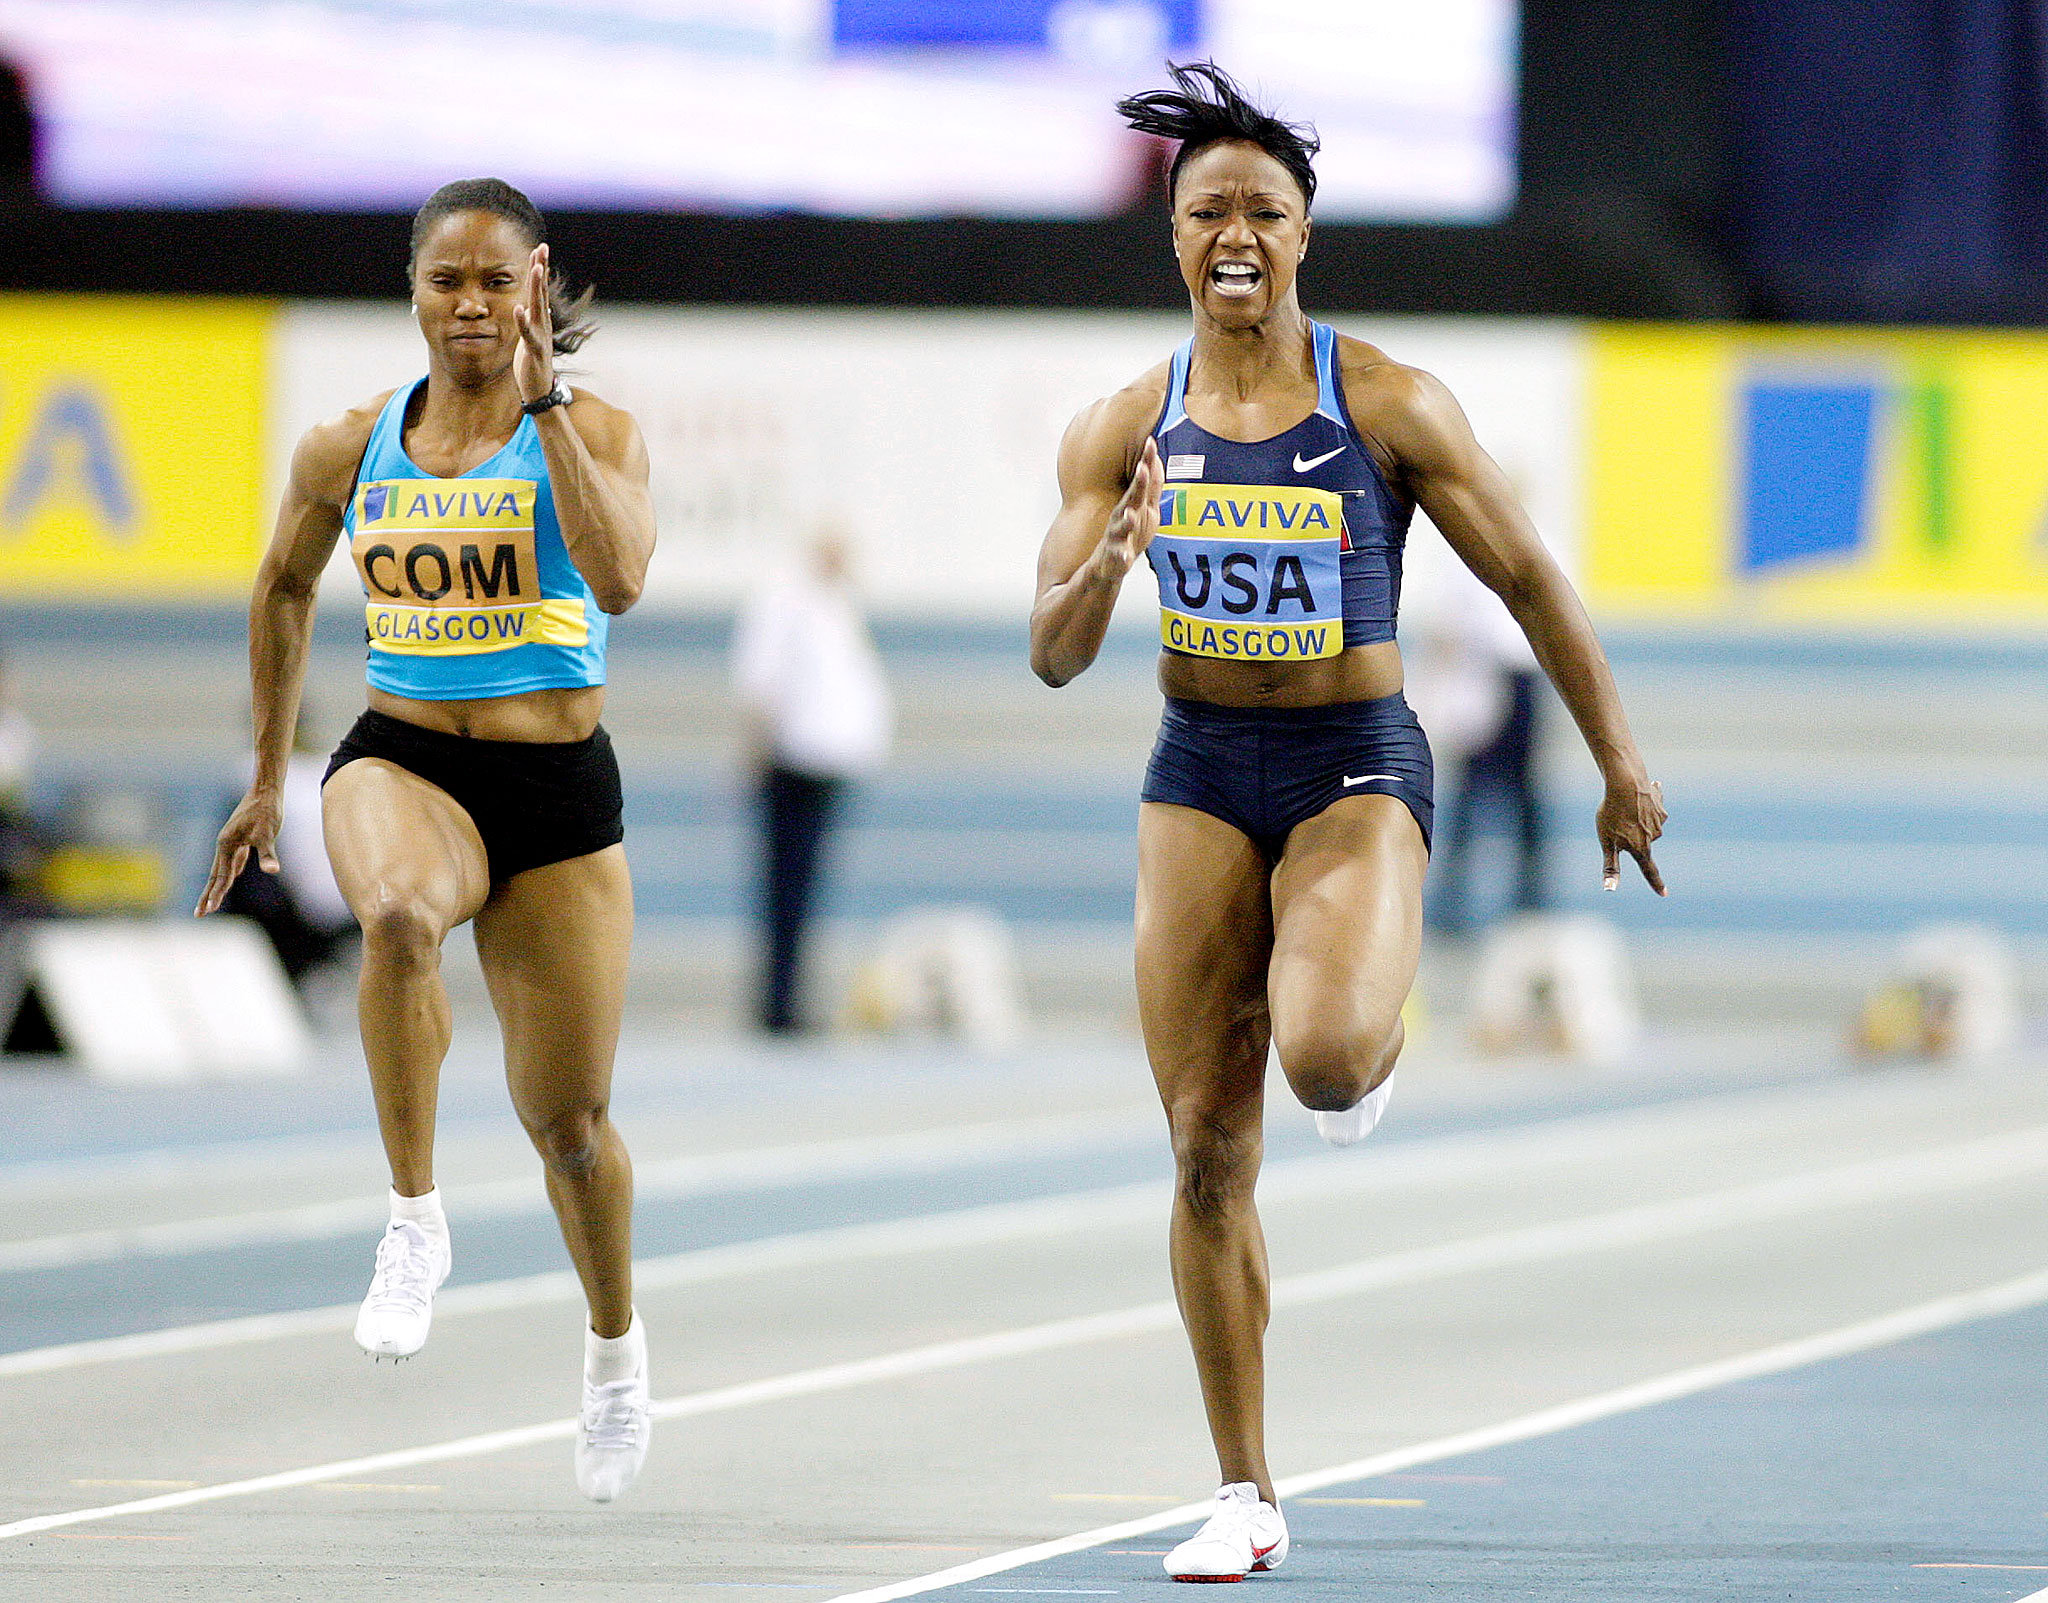 Carmelita Jeter has also starred indoors in the 60-meter dash, winning the Aviva International Match in Scotland as well as the U.S. national title in 2010.